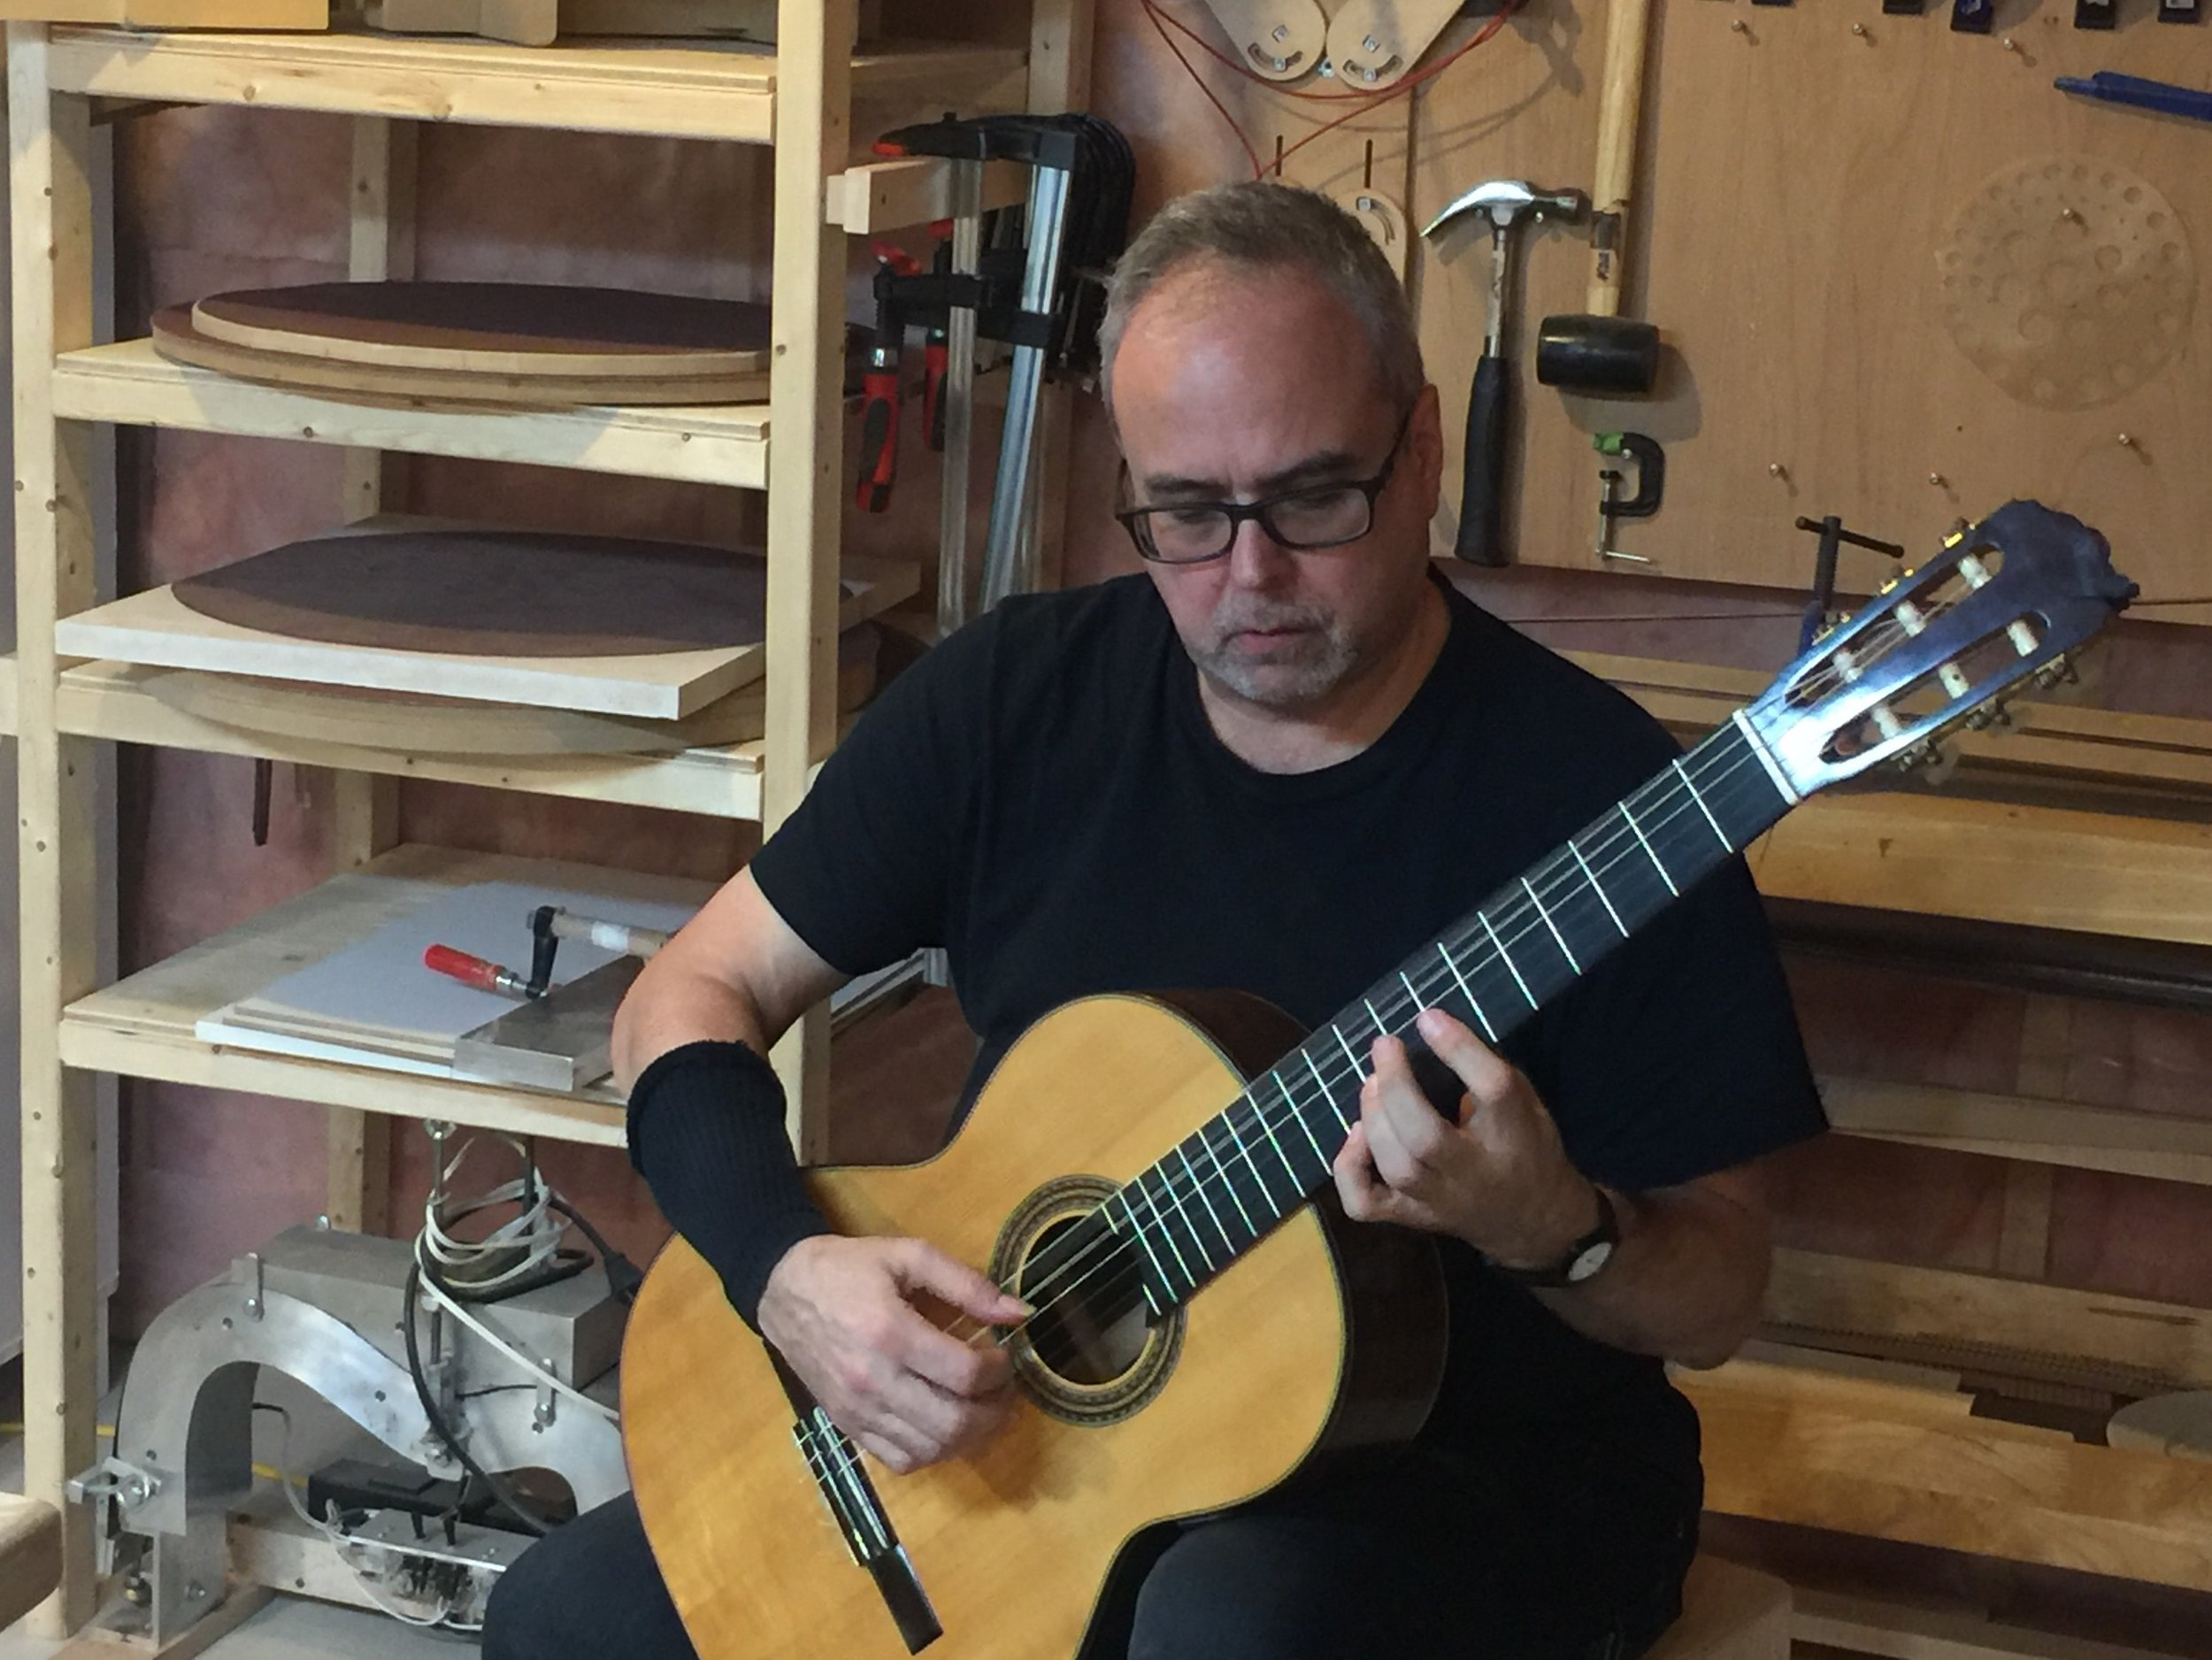 Jeffrey McFadden , professor from University of Toronto, doing some set up for his guitars in my workshop in Waterloo, Canada, 2017